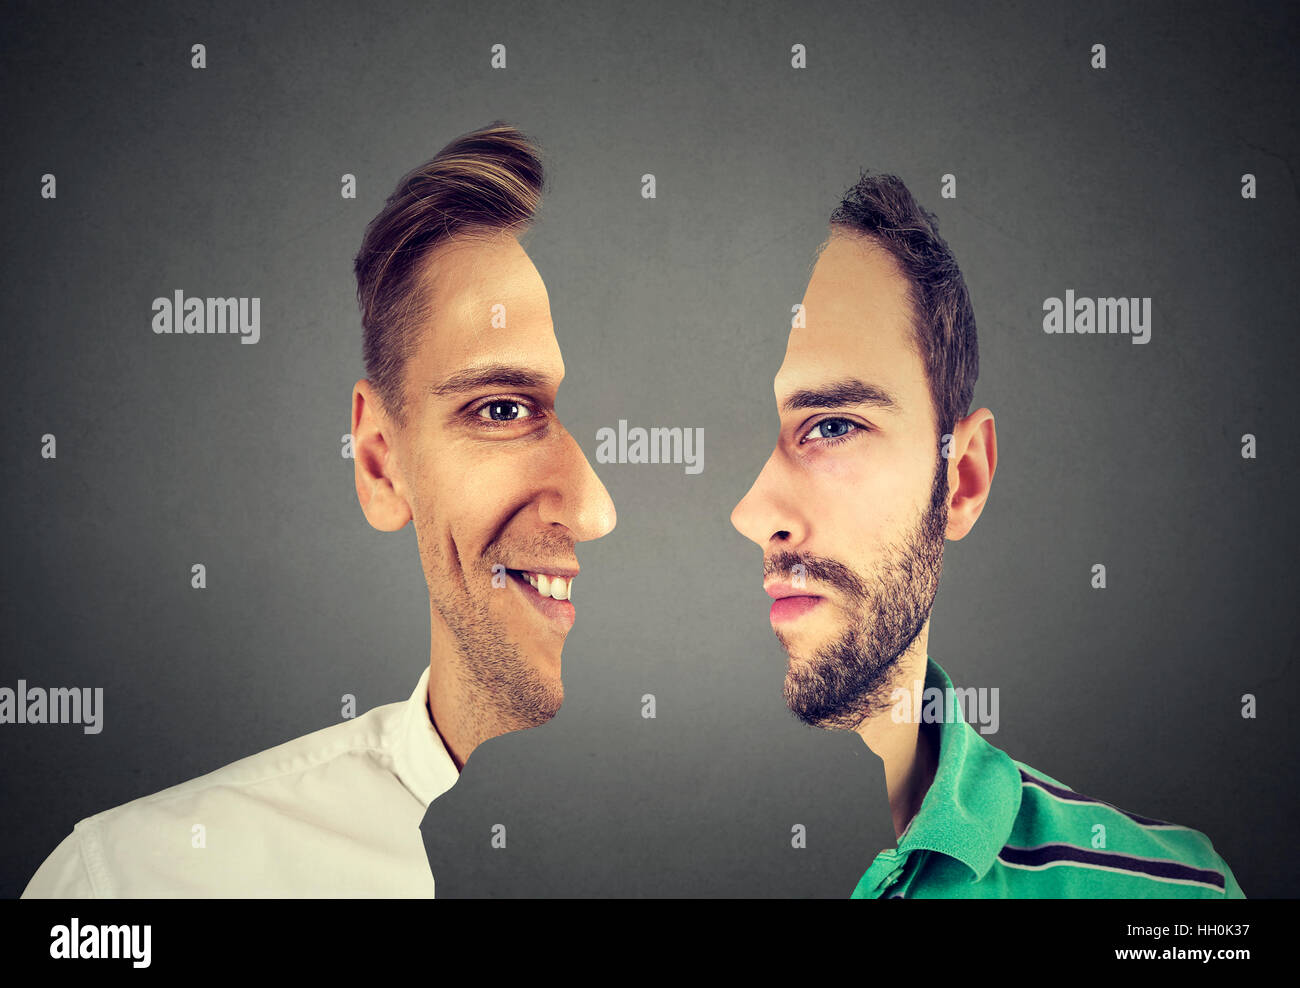 surrealistic portrait front with cut out profile of two young men isolated on gray wall background - Stock Image